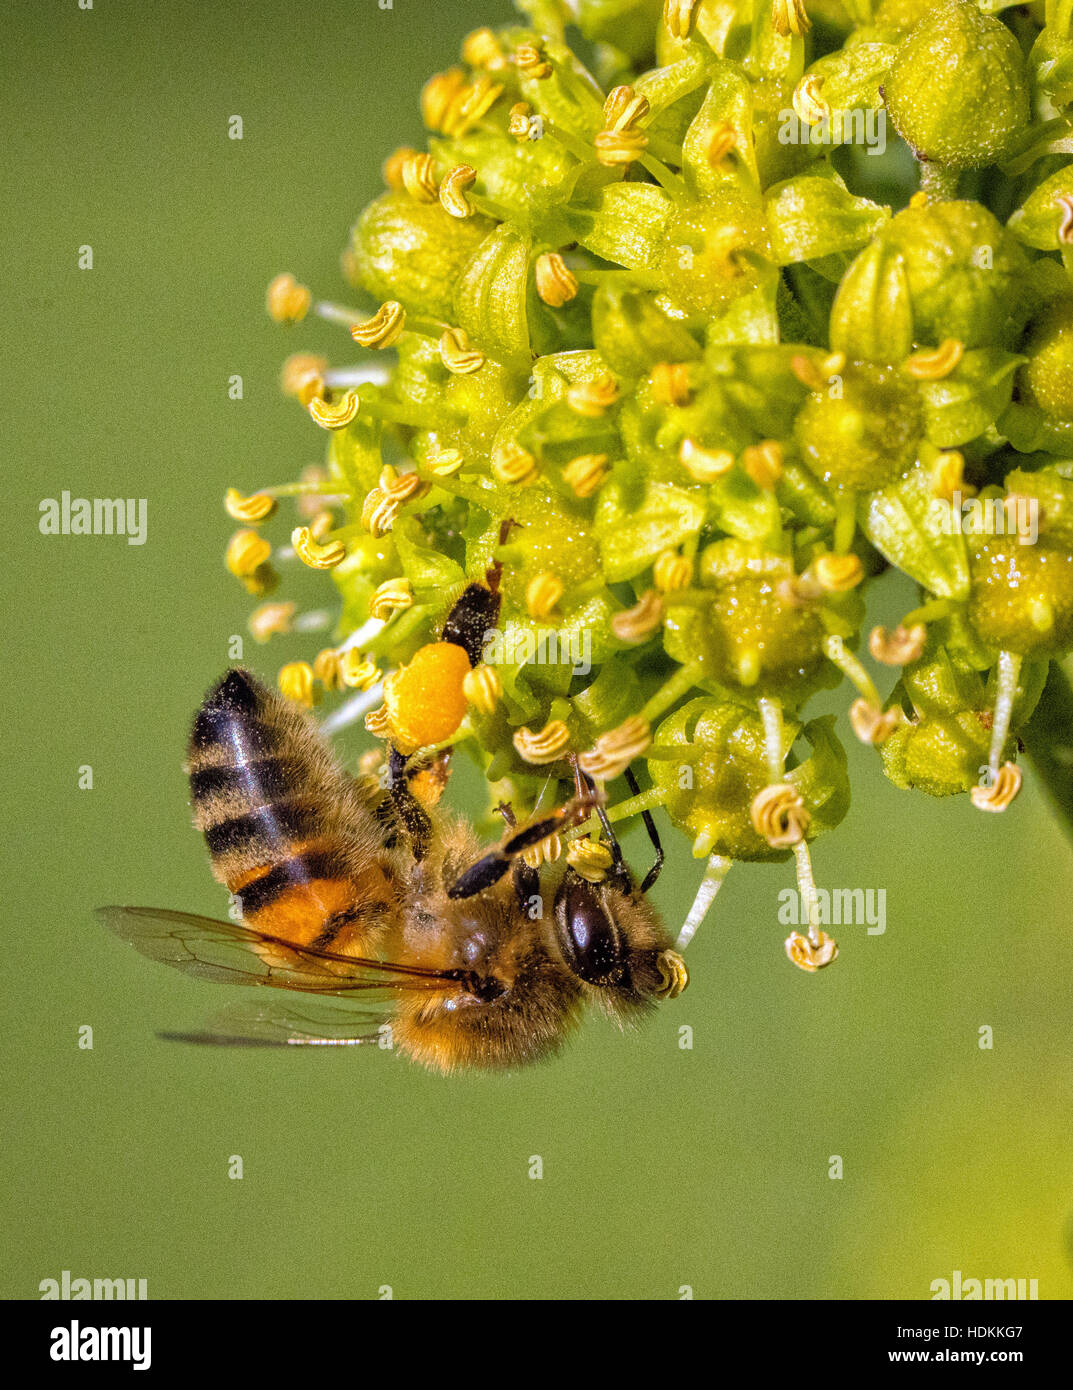 Western honey bee Apis mellifera feeding and collecting pollen from ivy flowers - Stock Image